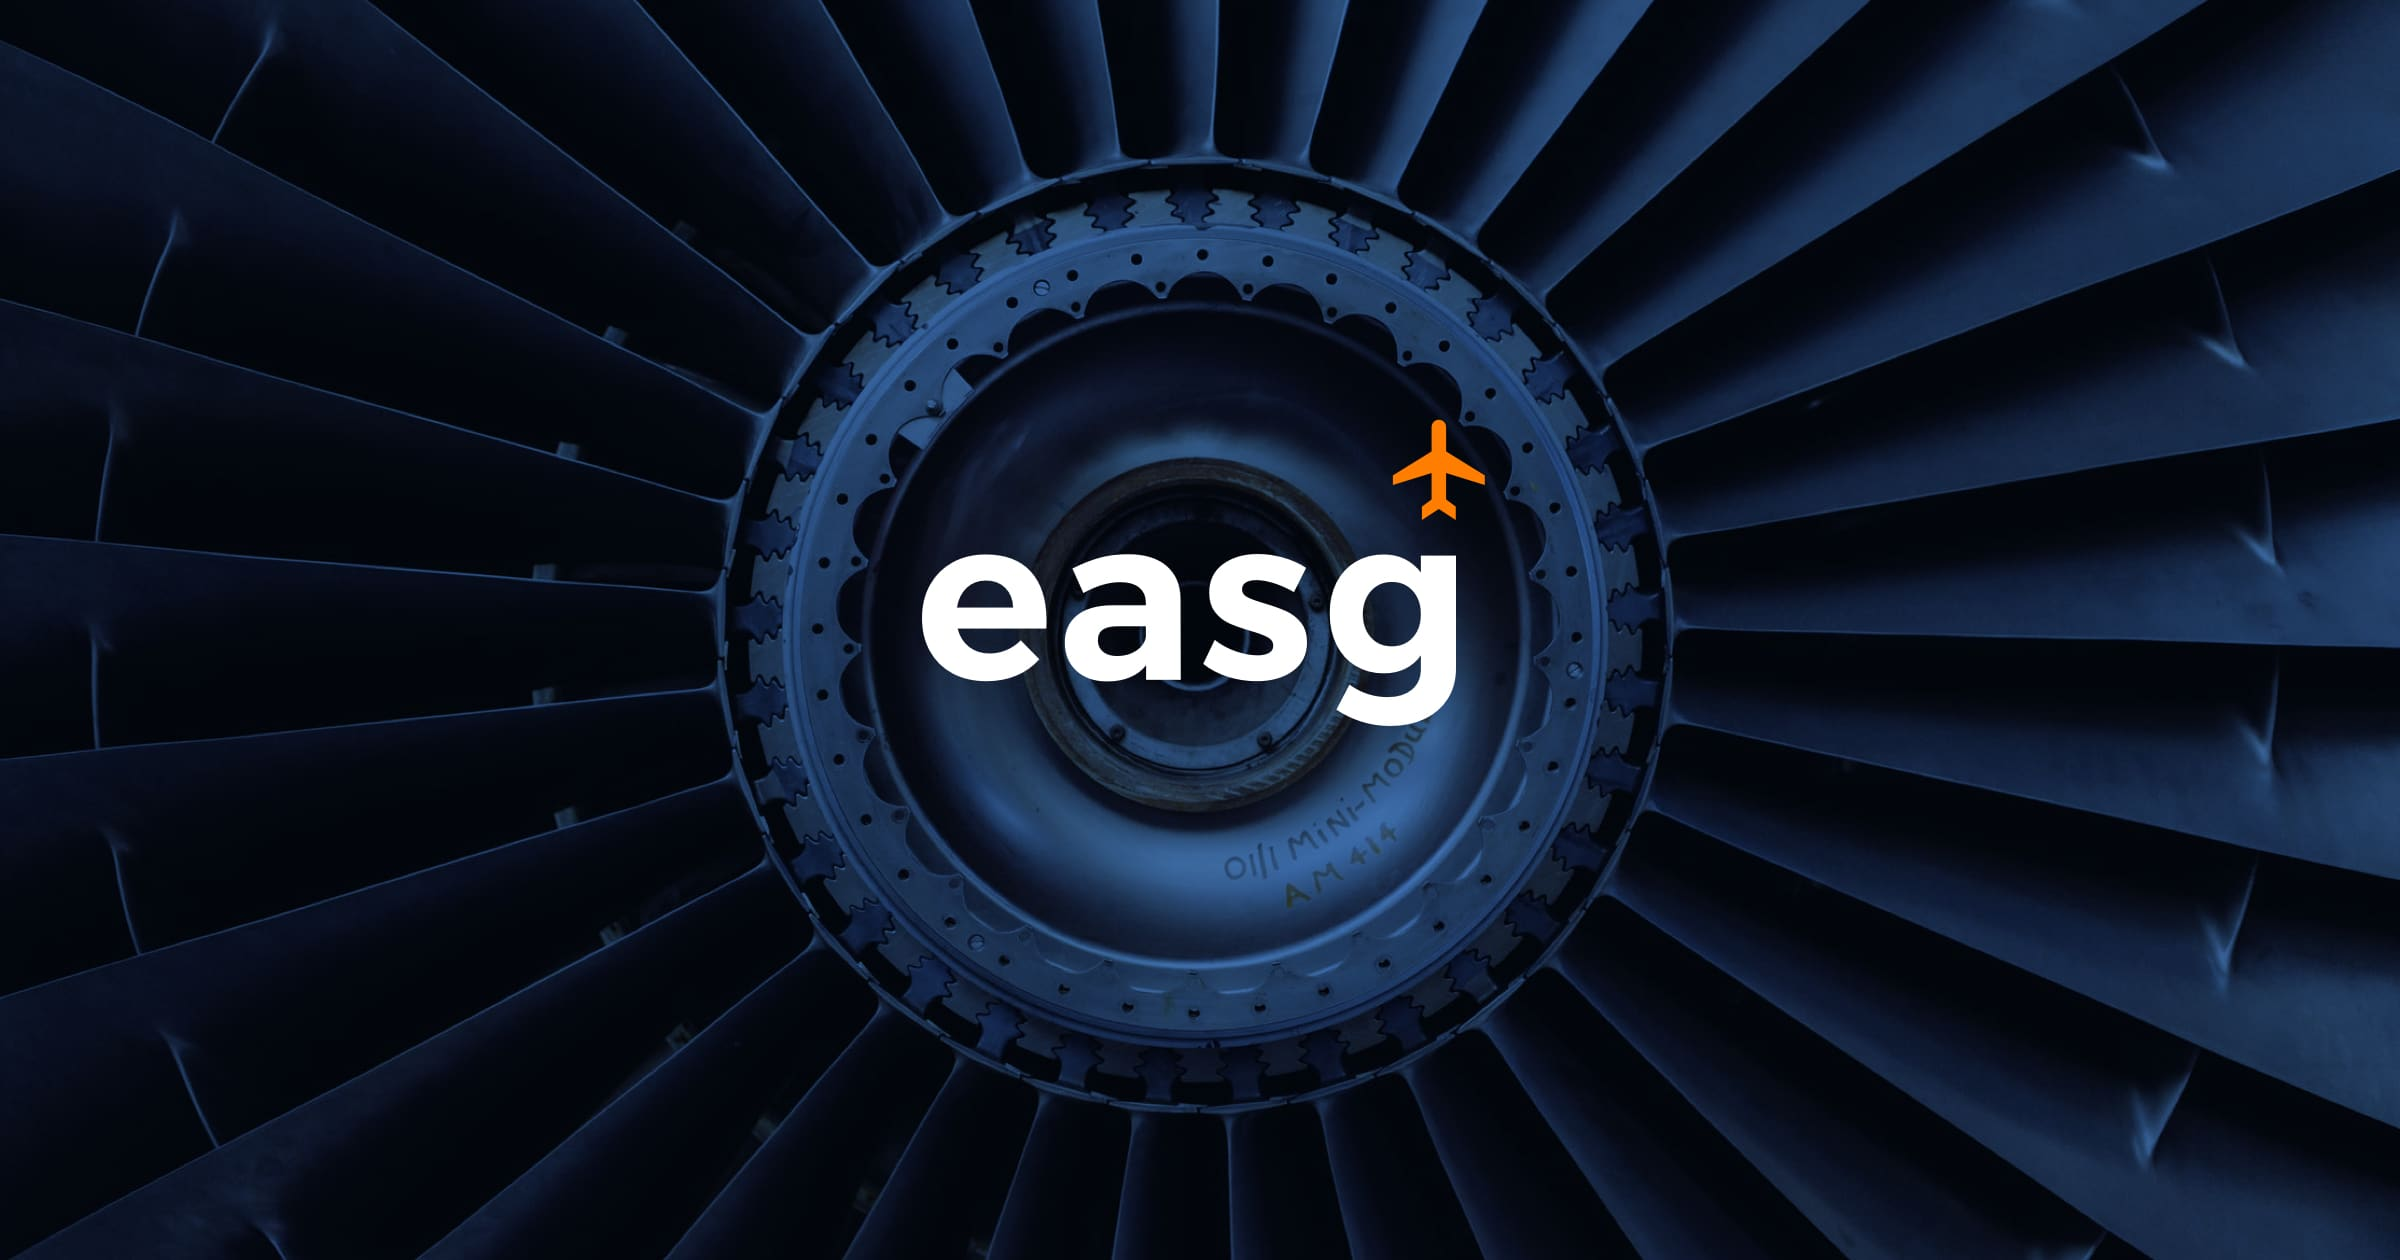 Easg